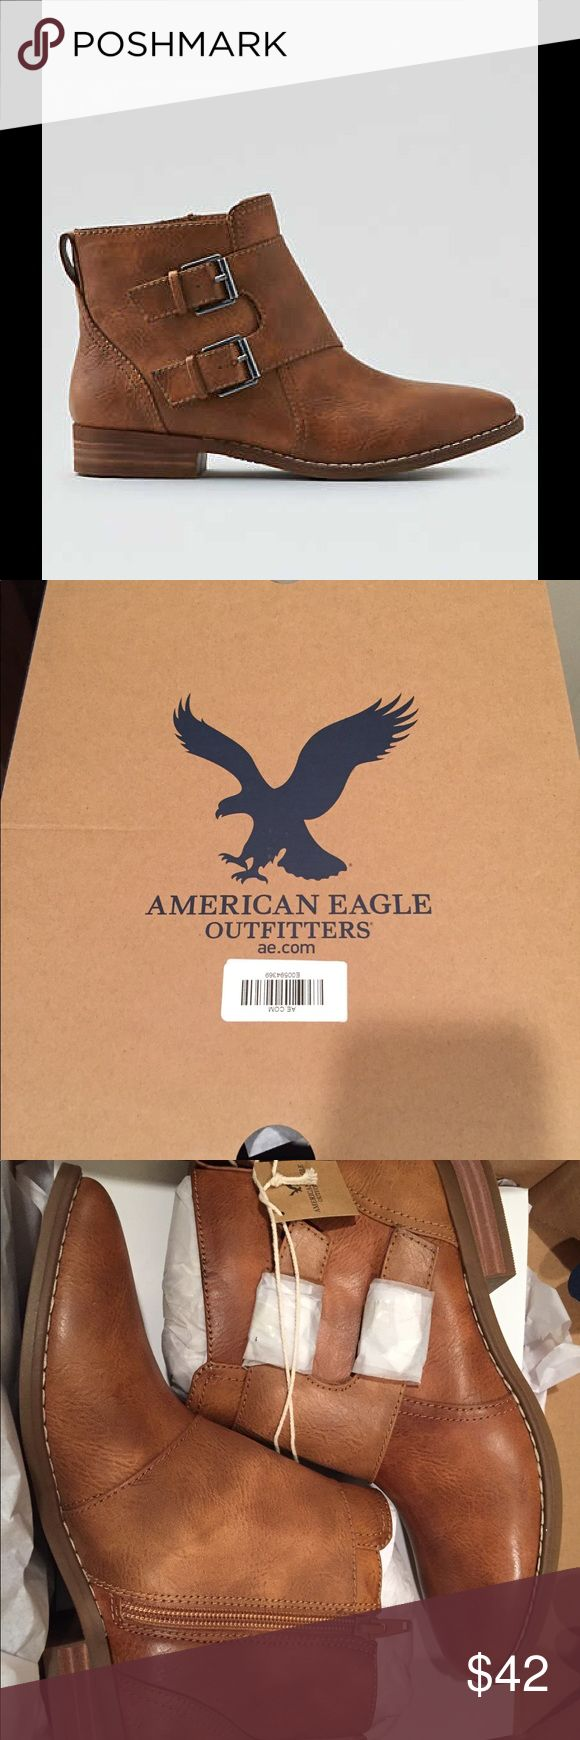 ☀️NWT American Eagle Outfitters Ankle Booties 7 American Eagle Outfitters AEO Buckled Ankle Booties, size 7, Brand New with tags & comes with box! American Eagle Outfitters Shoes Ankle Boots & Booties